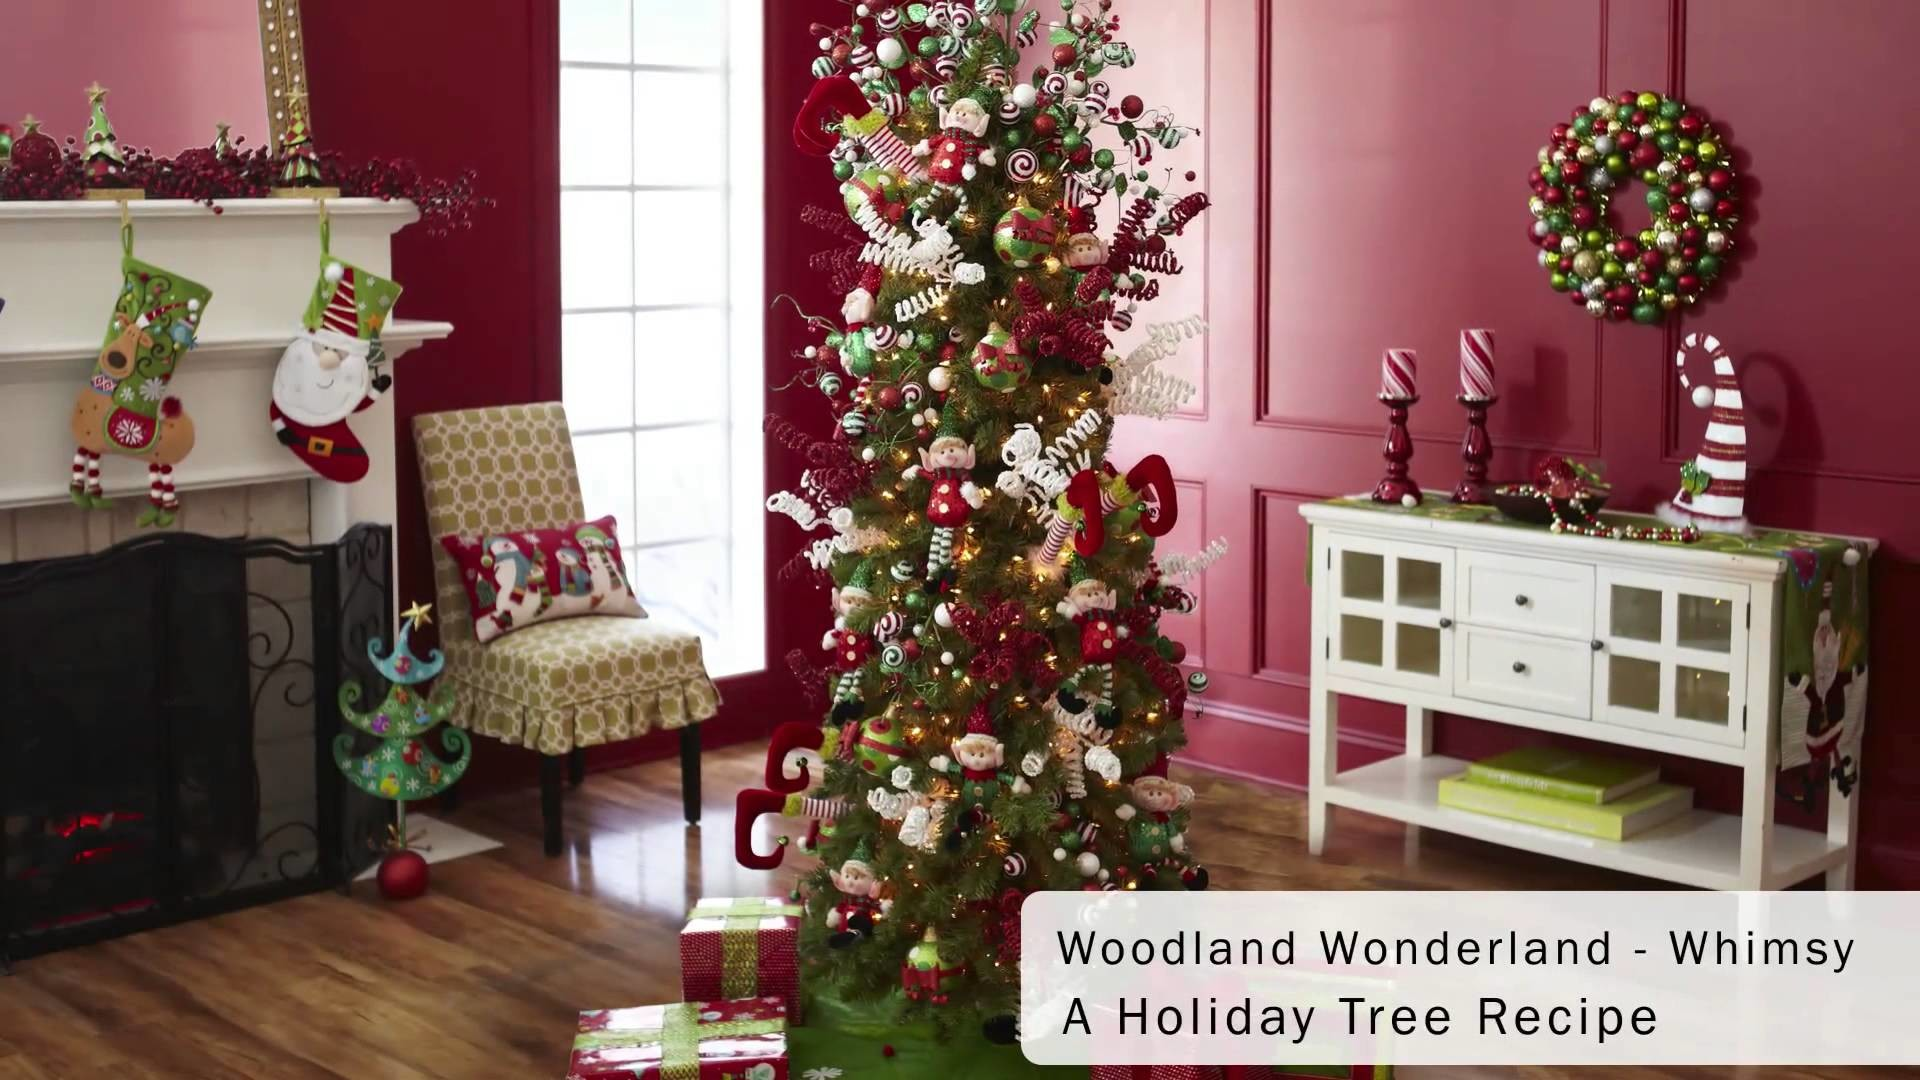 Pier 1 Imports: Whimsical Christmas Tree Décor